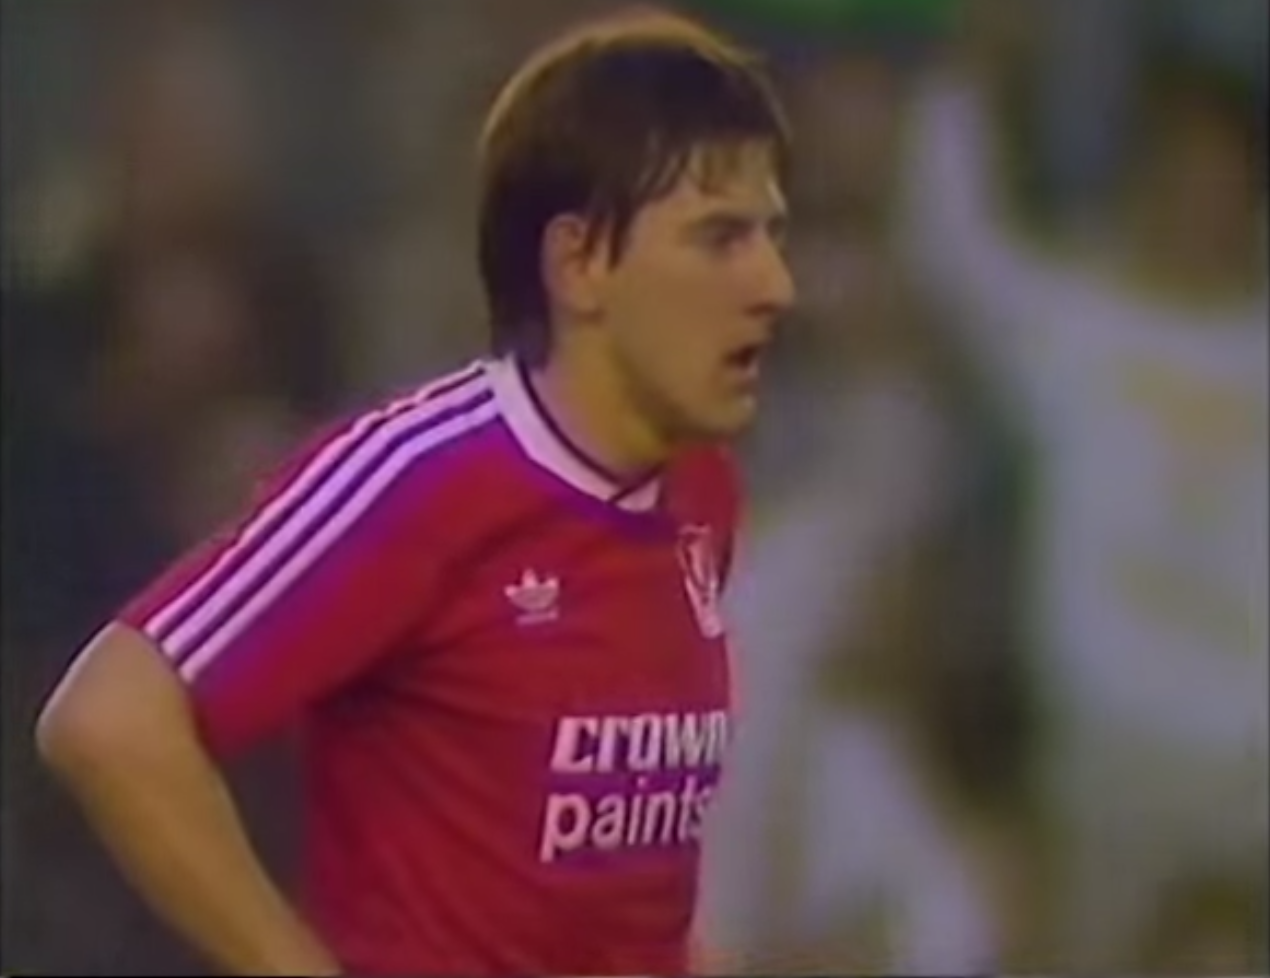 ON THIS DAY: BEARDSLEY GETS A KISS FROM A MAN WEARING A BLUE STRIPED SHIRT